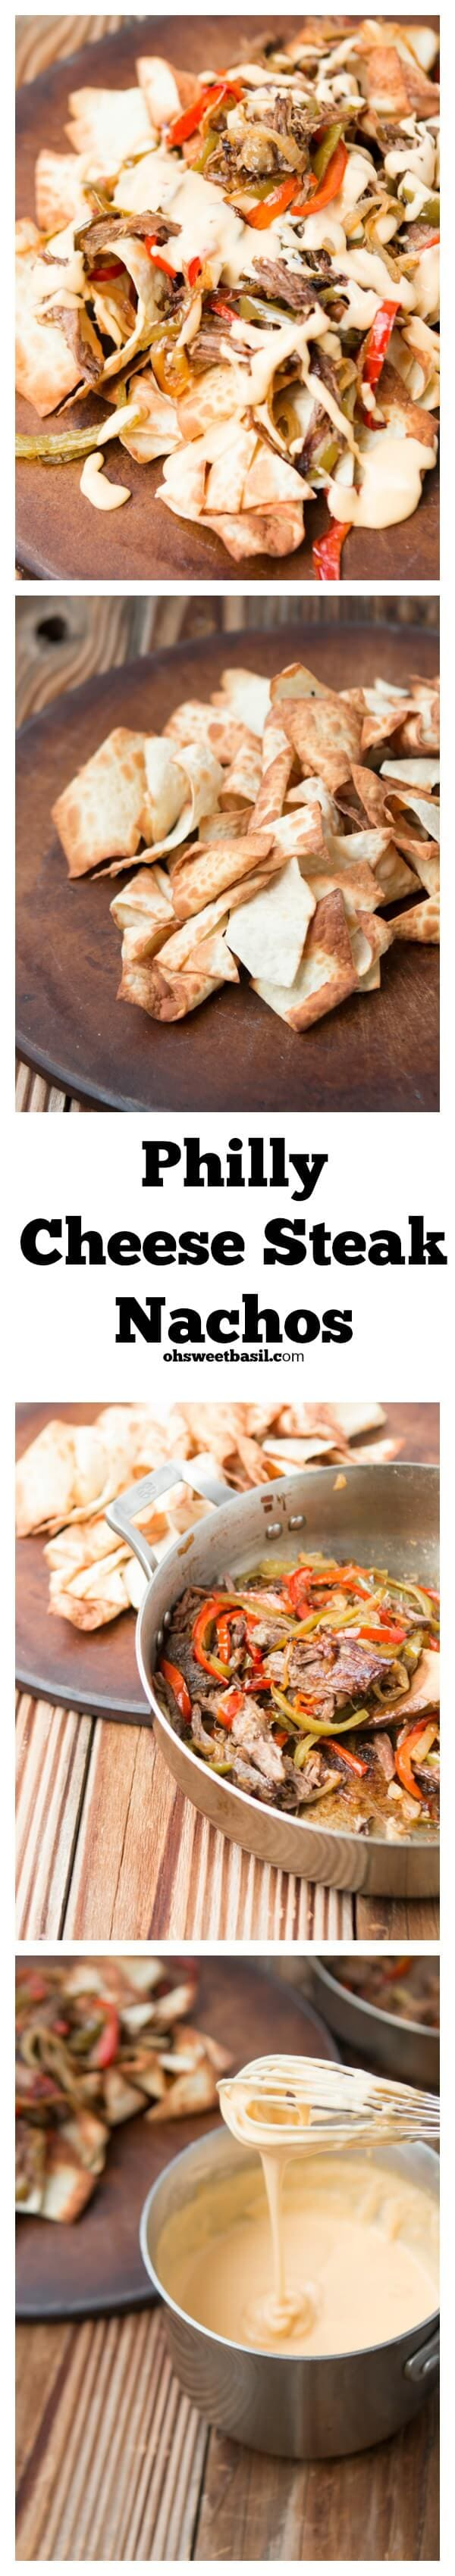 The BEST nachos ever! Philly cheese steak nachos for game day recipes ohsweetbasil.com.